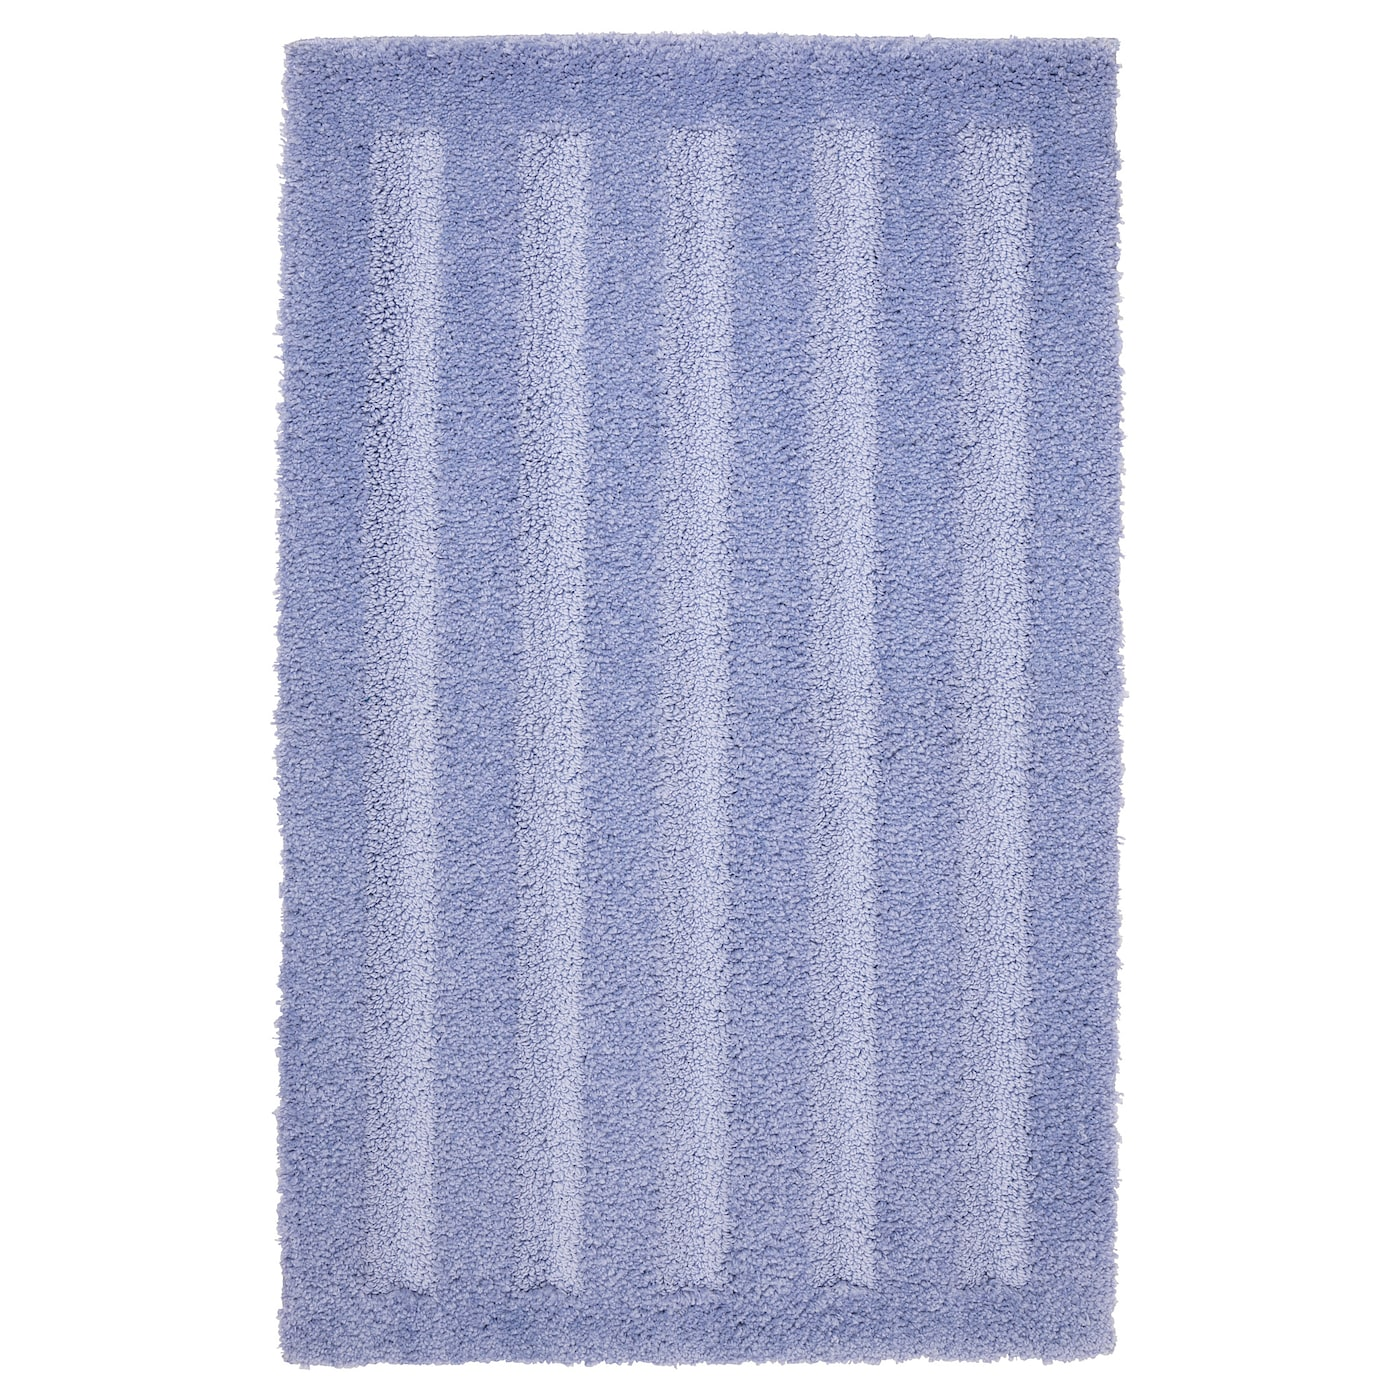 IKEA EMTEN bath mat Ultra soft and quick to dry since it's made of microfibre.